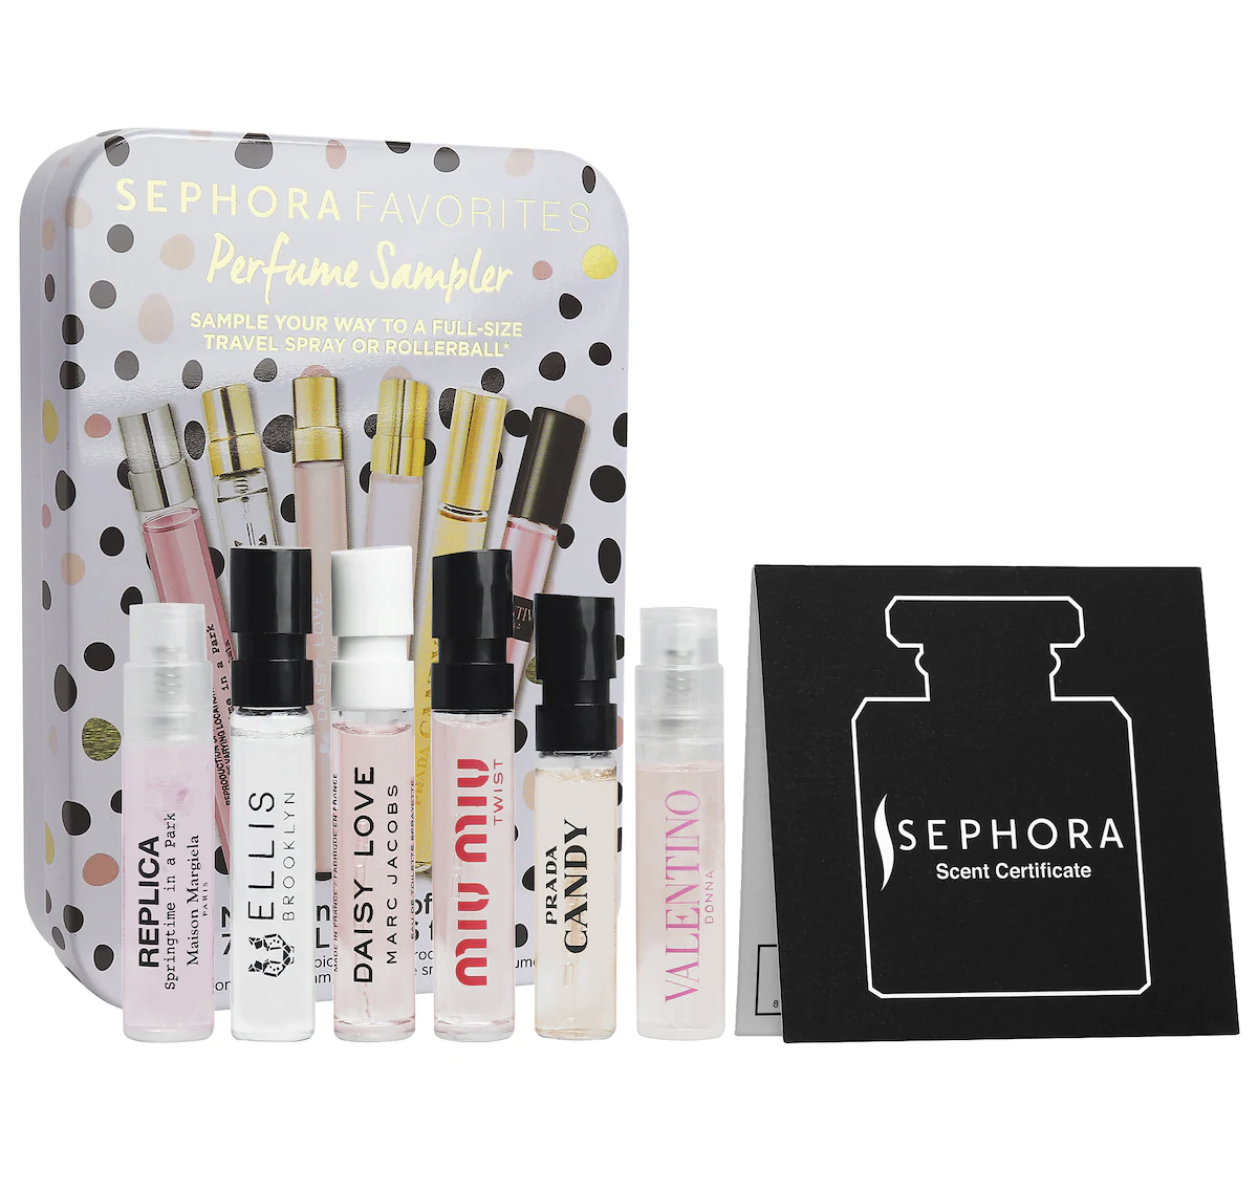 Sephora gift set with six sample size perfumes and a gift certificate